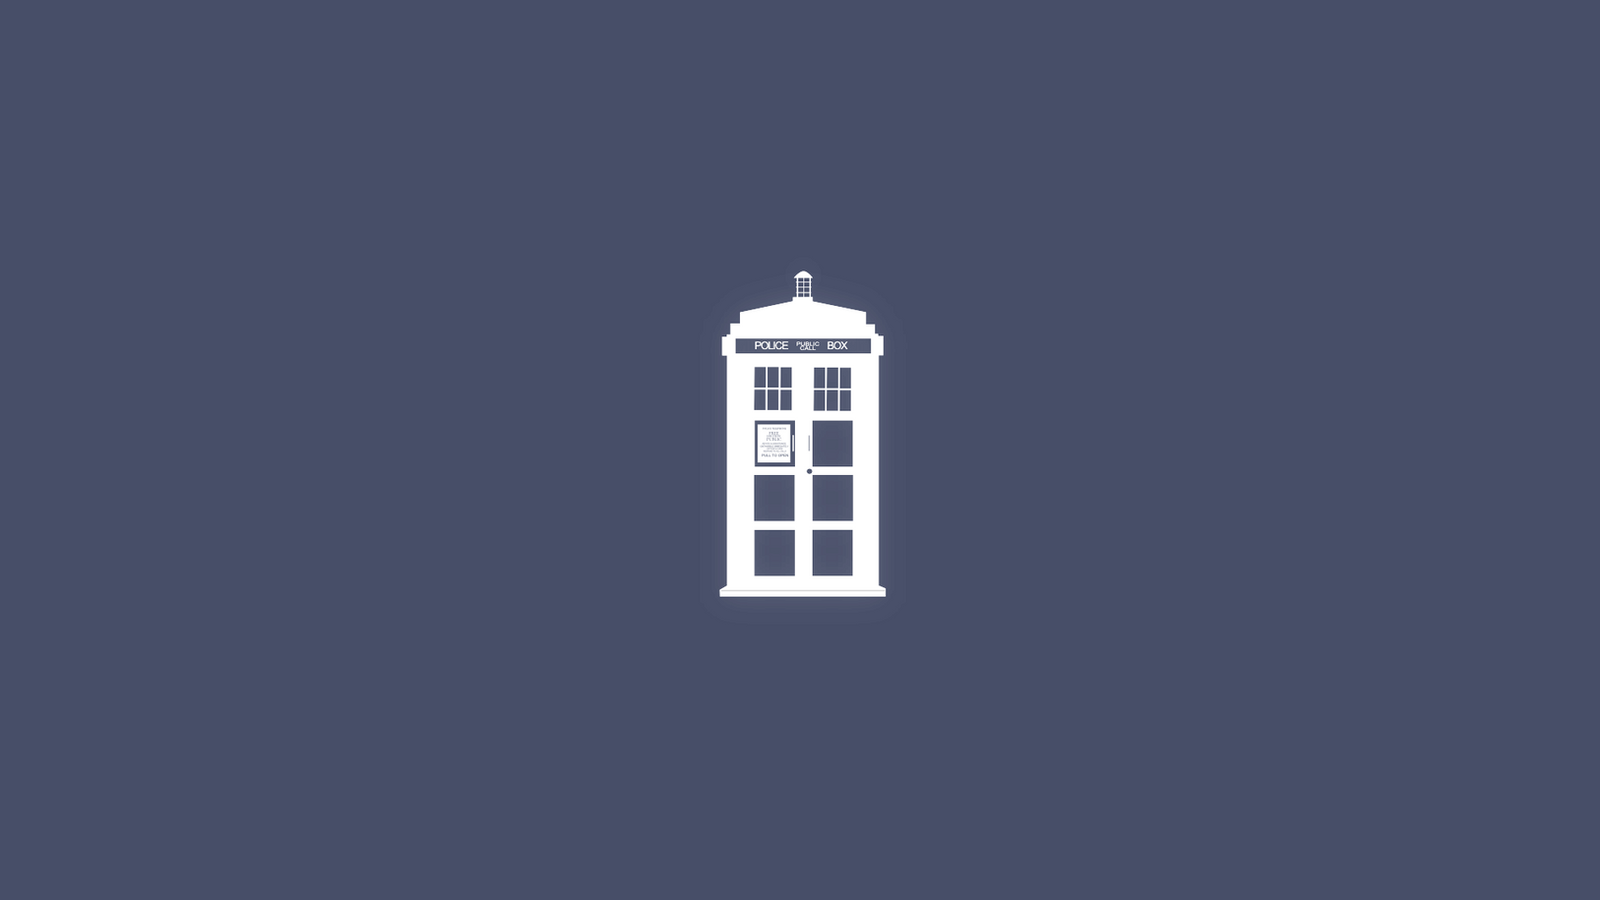 tardis images hd wallpaper - photo #7